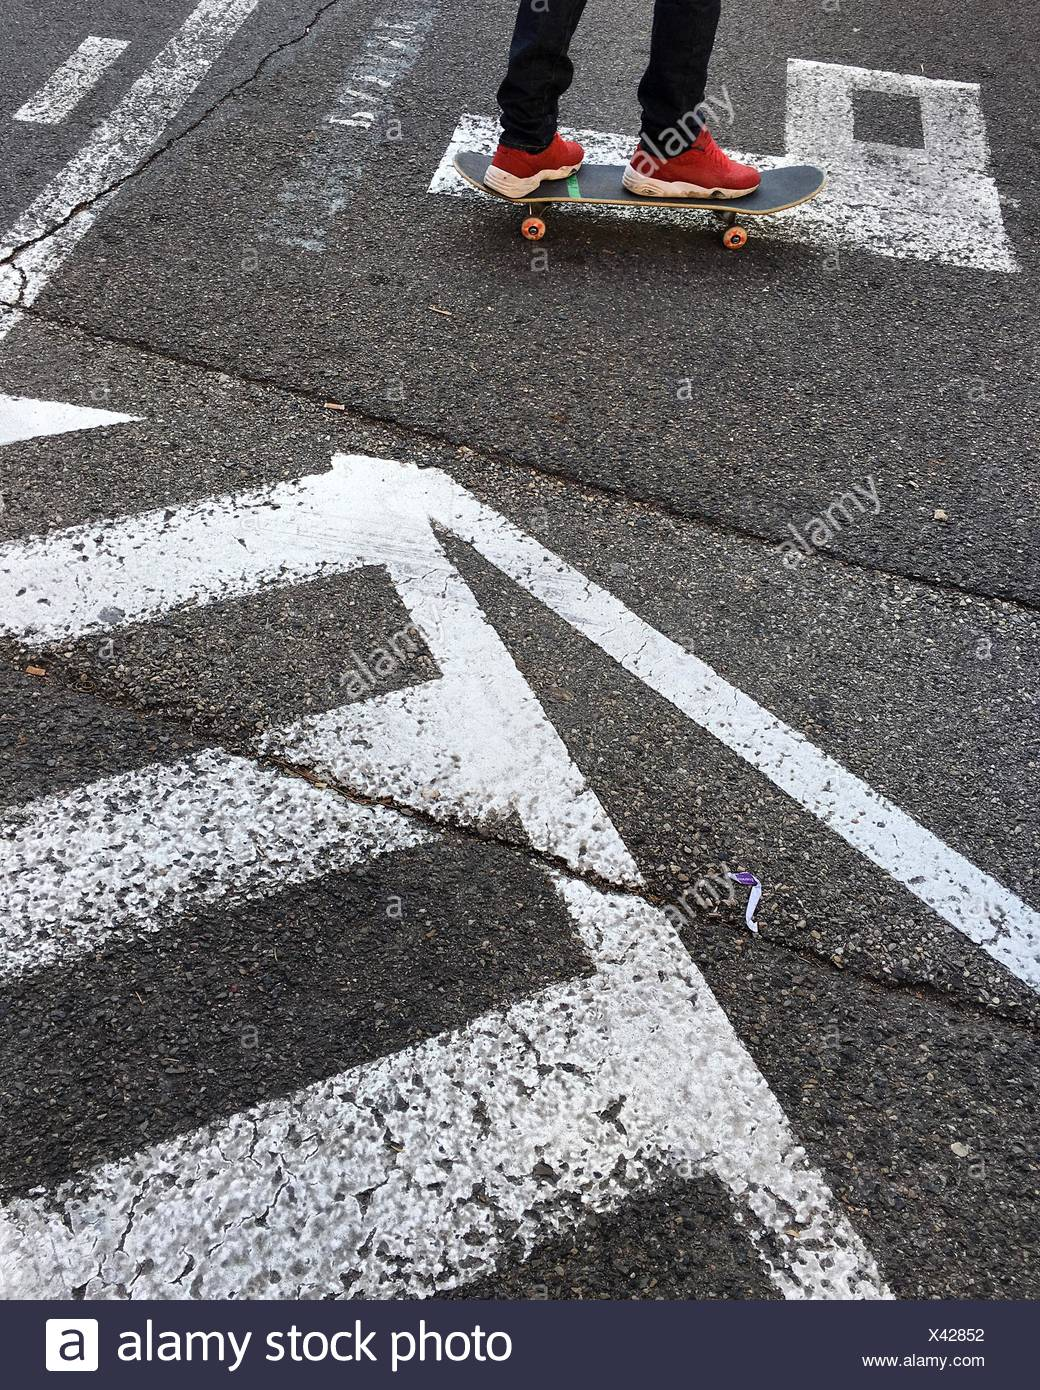 Low Section Of Man Skateboarding On Road - Stock Image